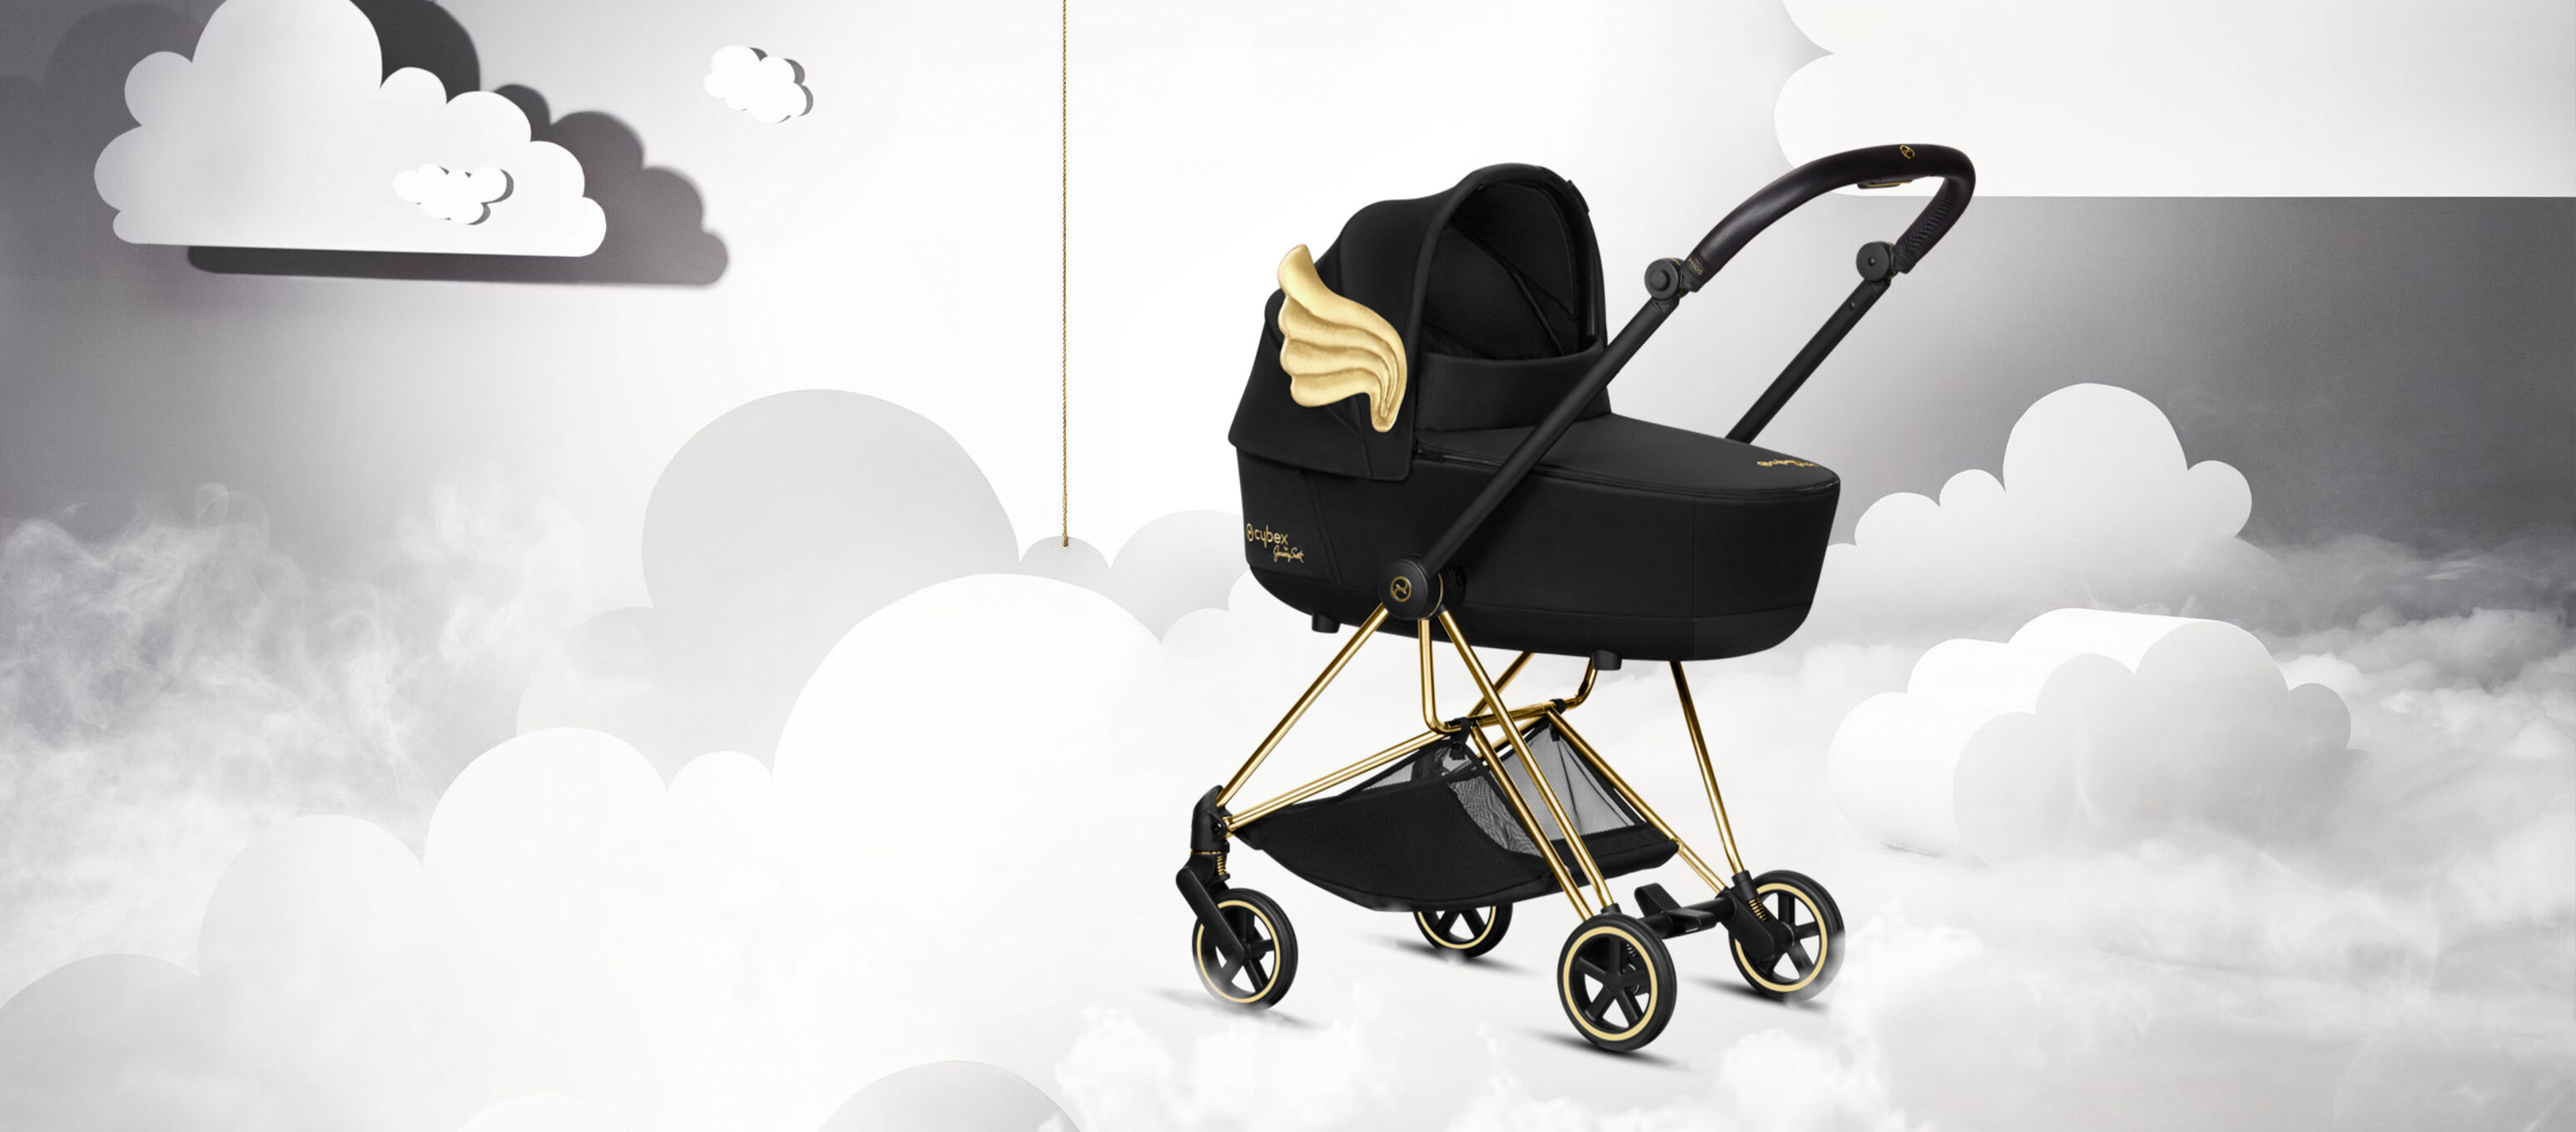 Cybex by Jeremy Scott Wings Kollektion Wolke und Kinderwagen Bild